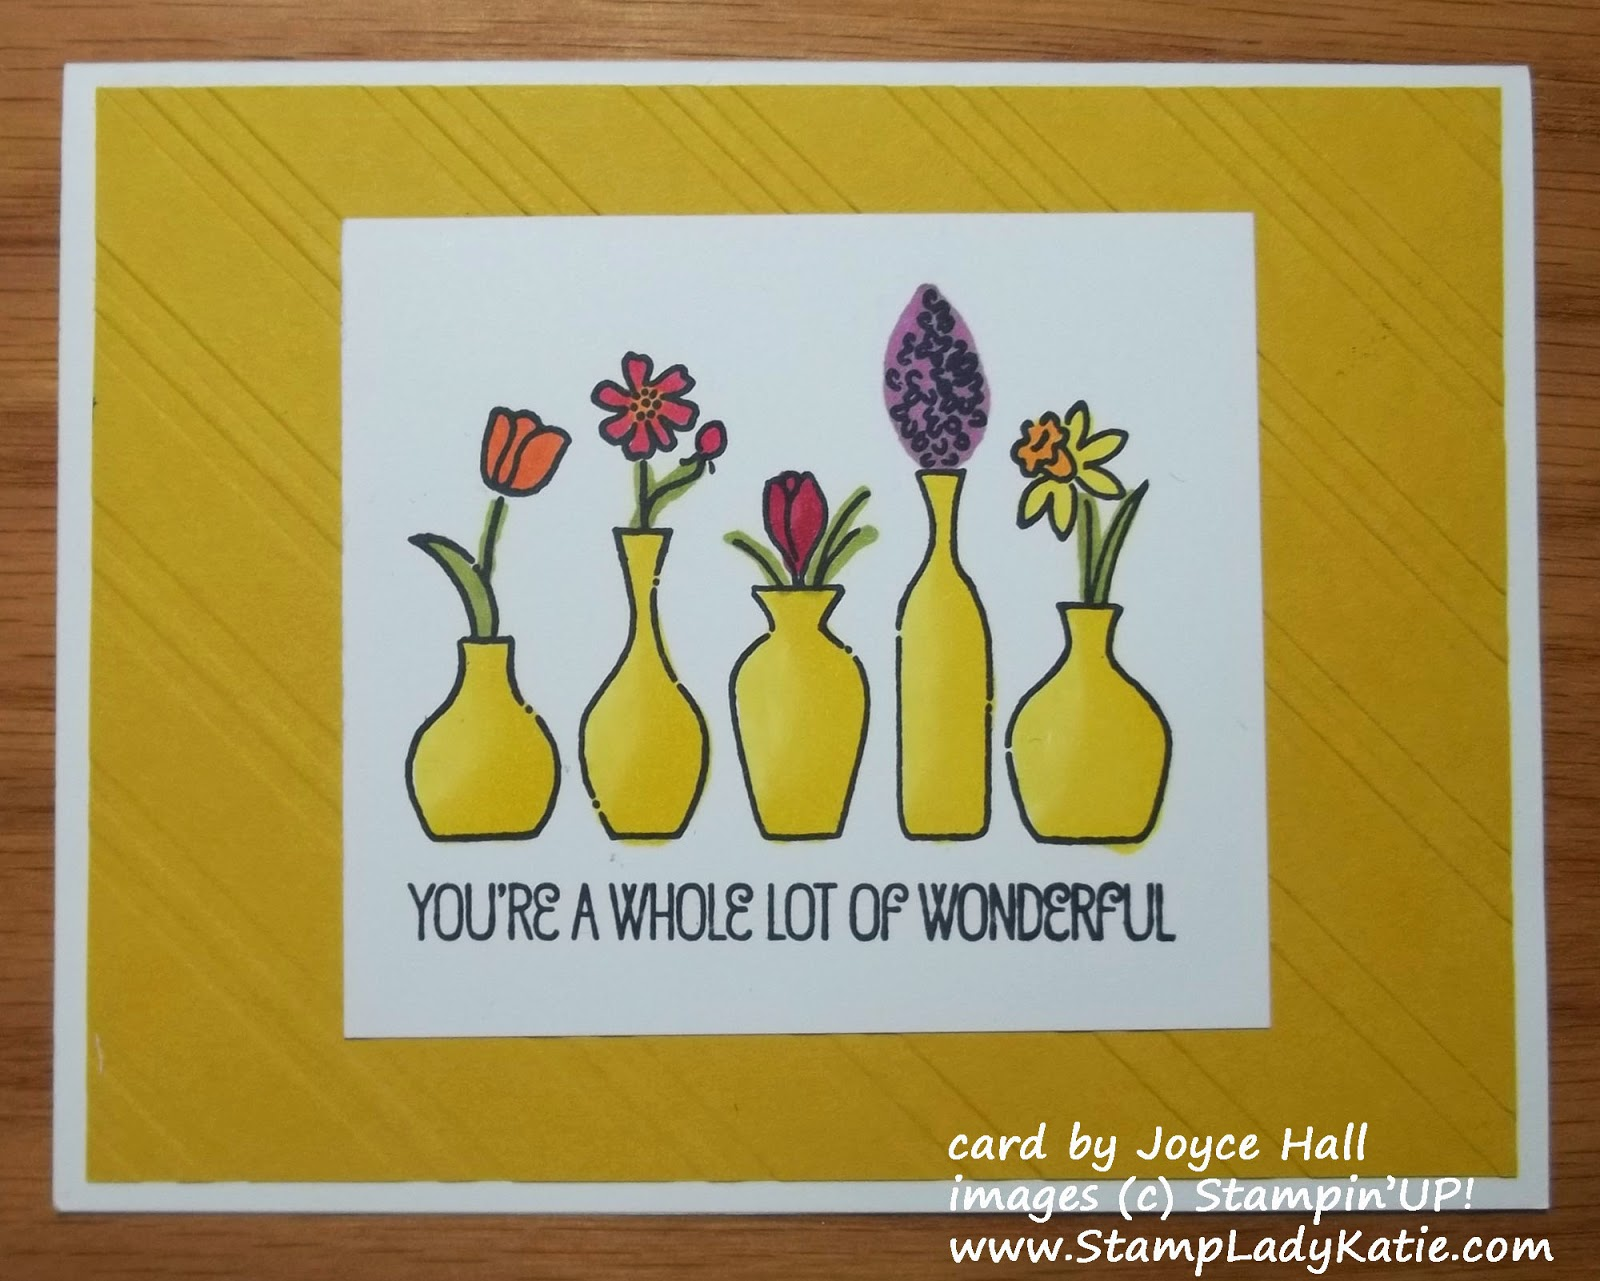 Card made with Stampin'UP!'s Vivid Vases Stamp and colored with the Blendabilities alcohol markers